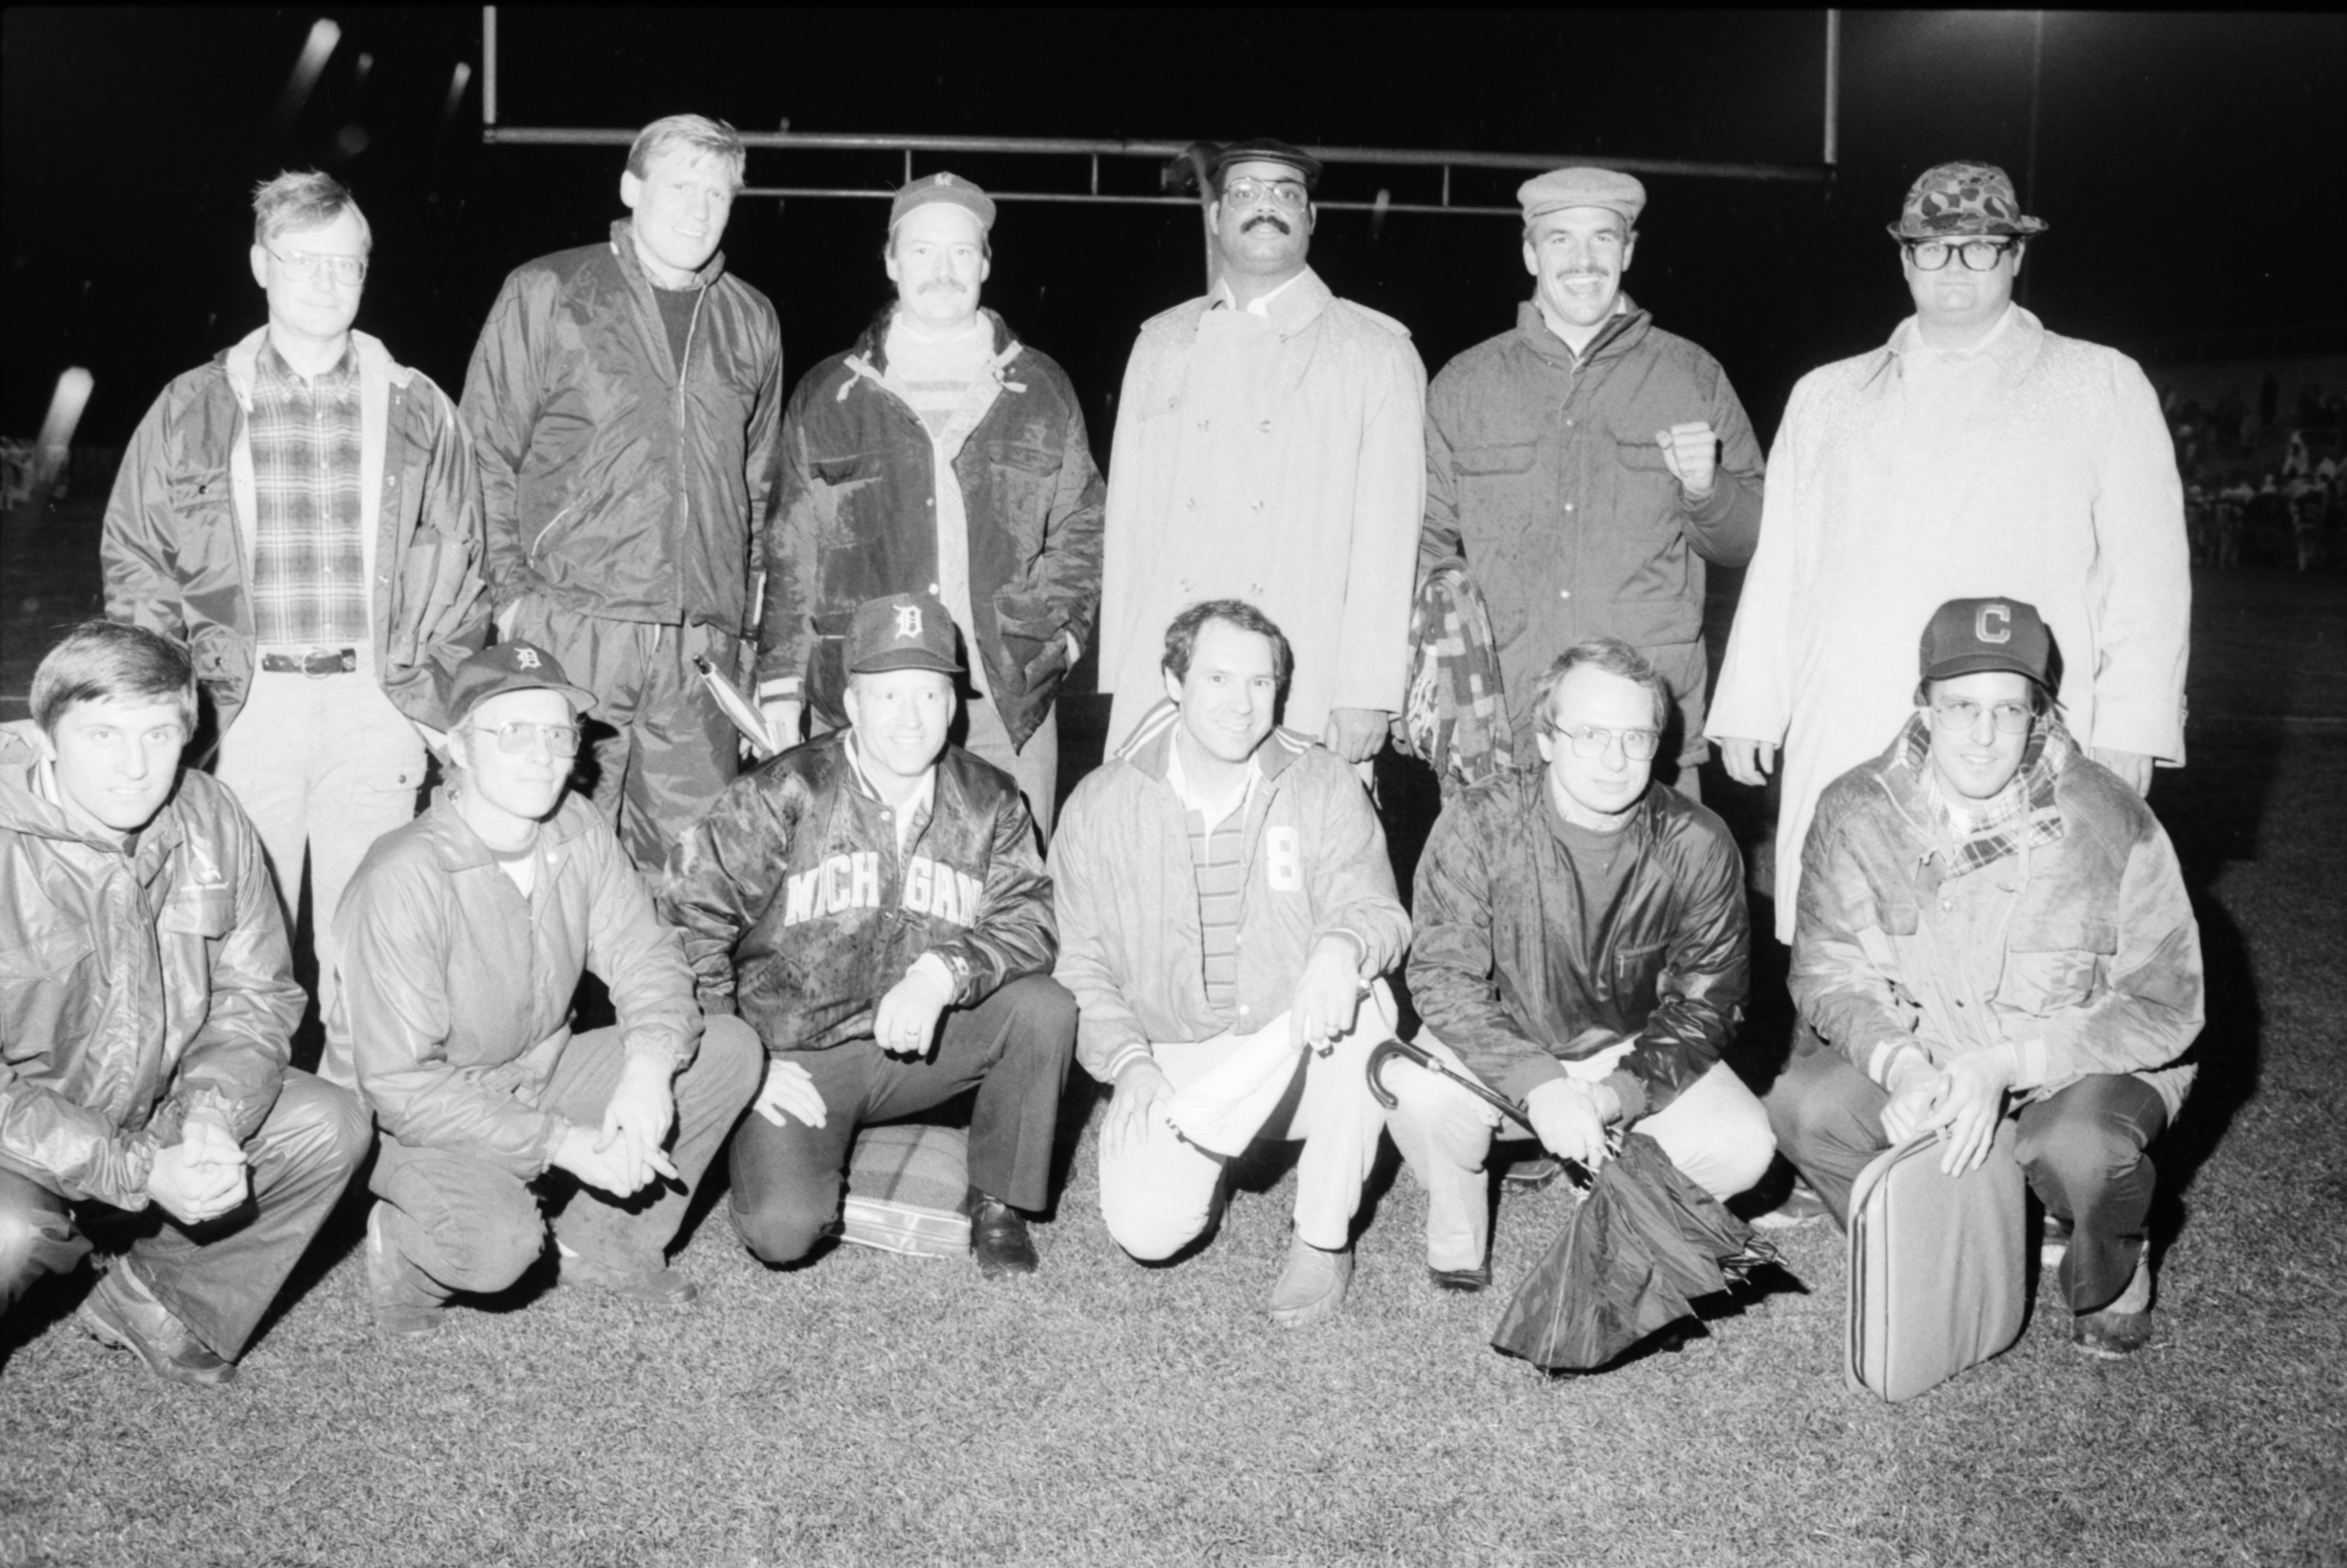 Pioneer High School Football Team Alumni, October 1985 image